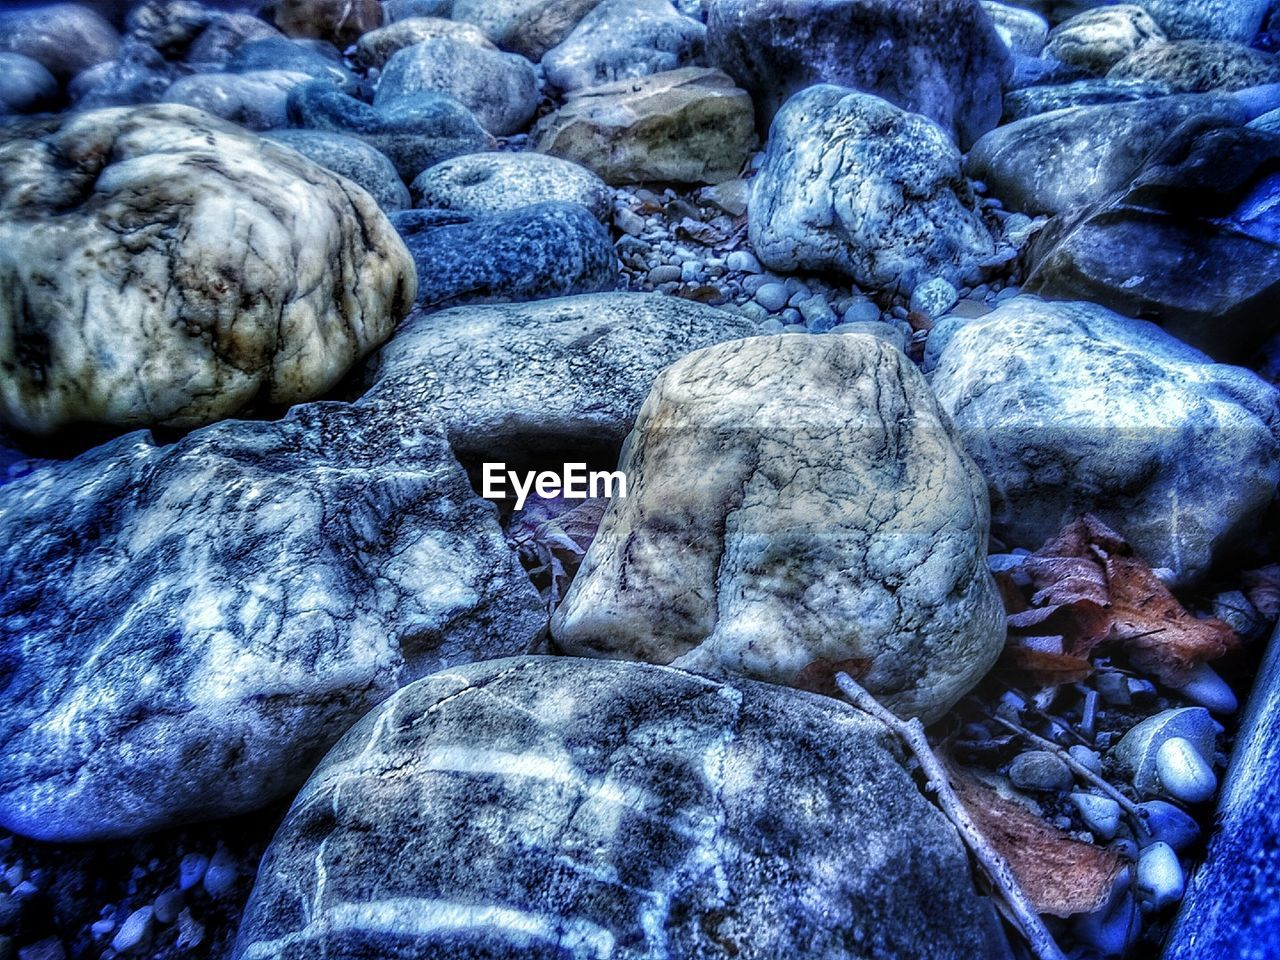 beach, nature, no people, rock - object, pebble, outdoors, pebble beach, beauty in nature, day, sea, close-up